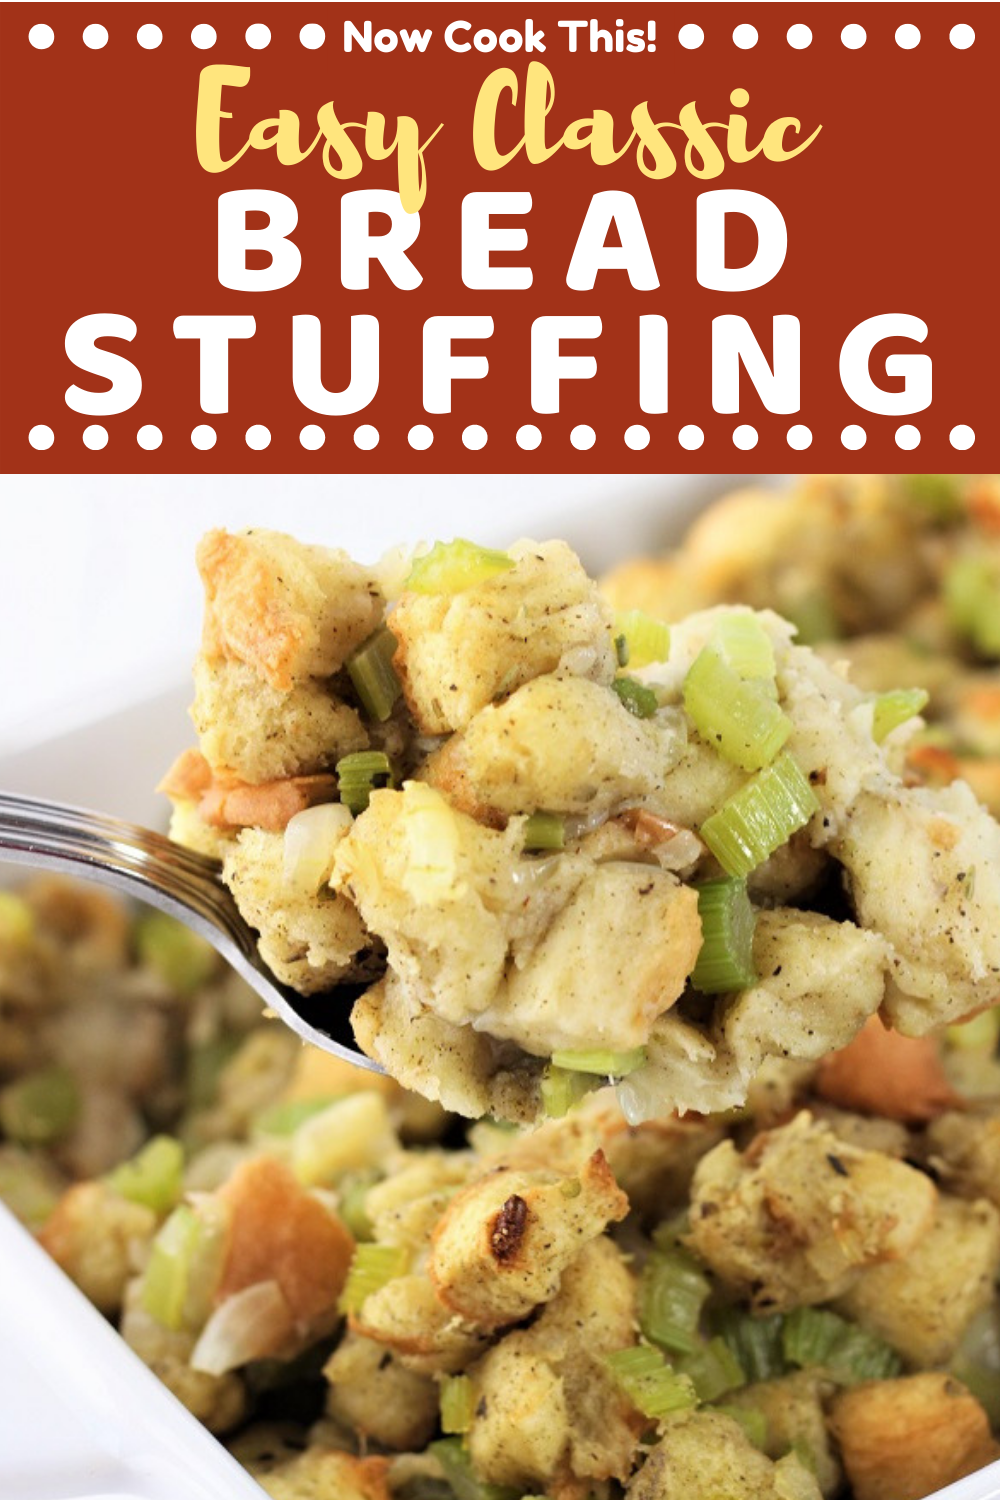 Easy Classic Bread Stuffing • Now Cook This!